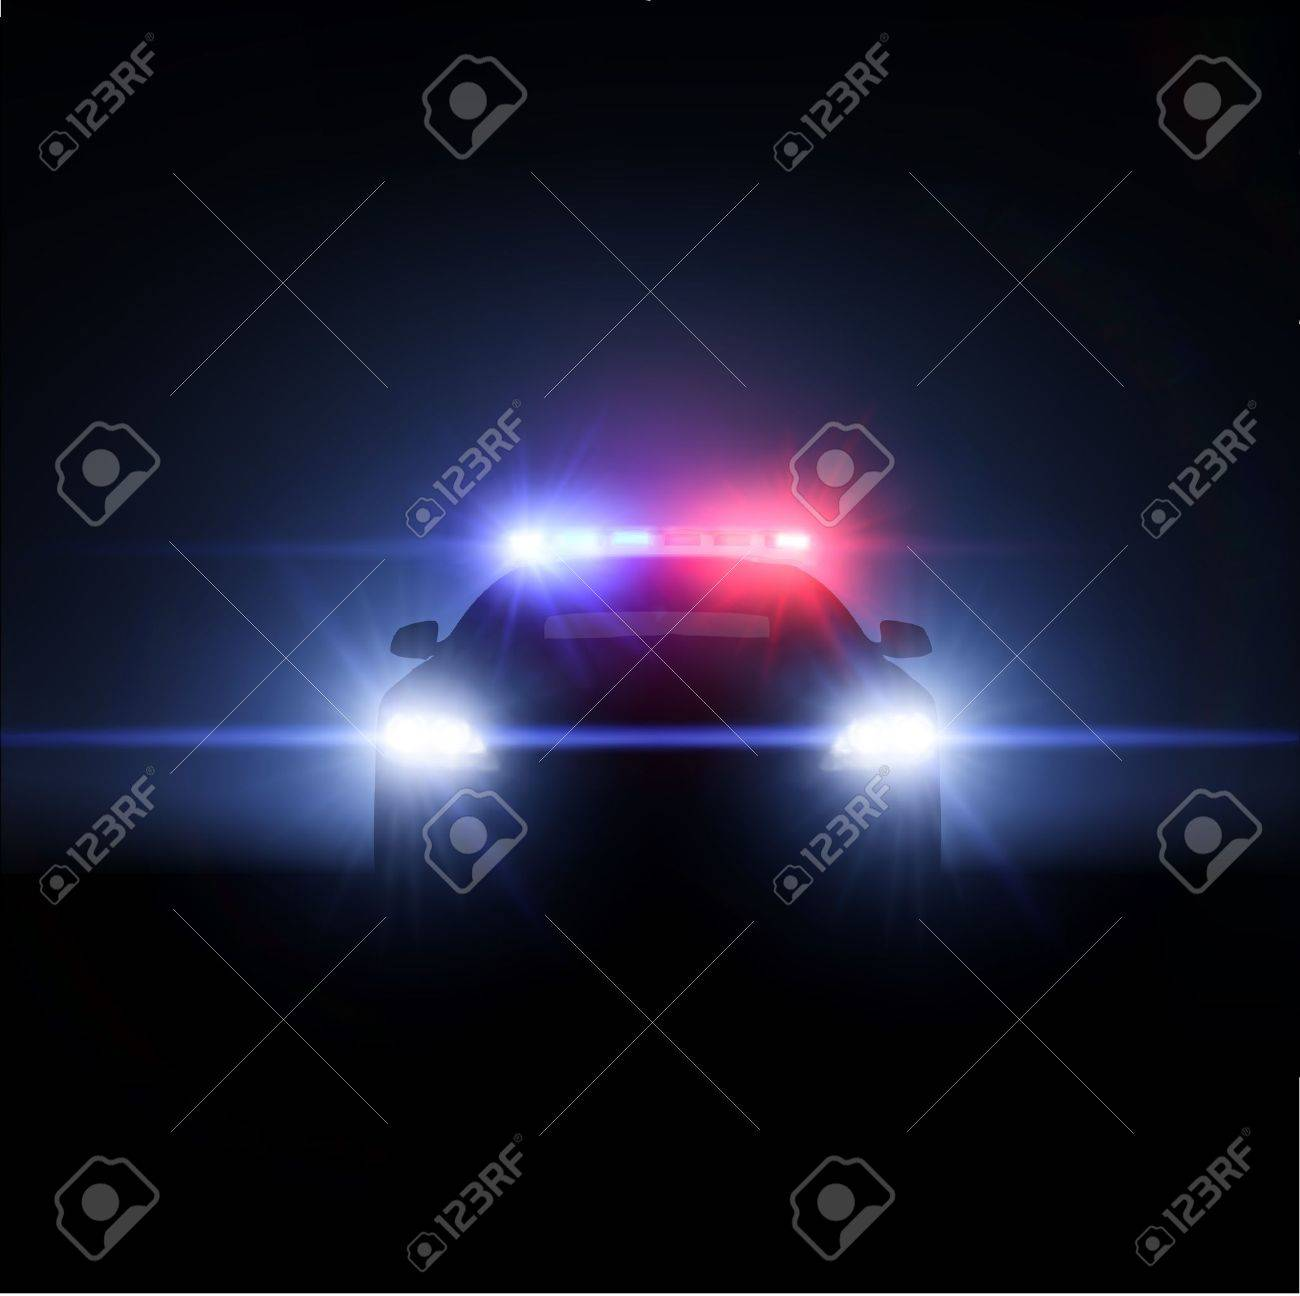 Police car with full array of lights  Vector illustration Stock Vector - 18478172